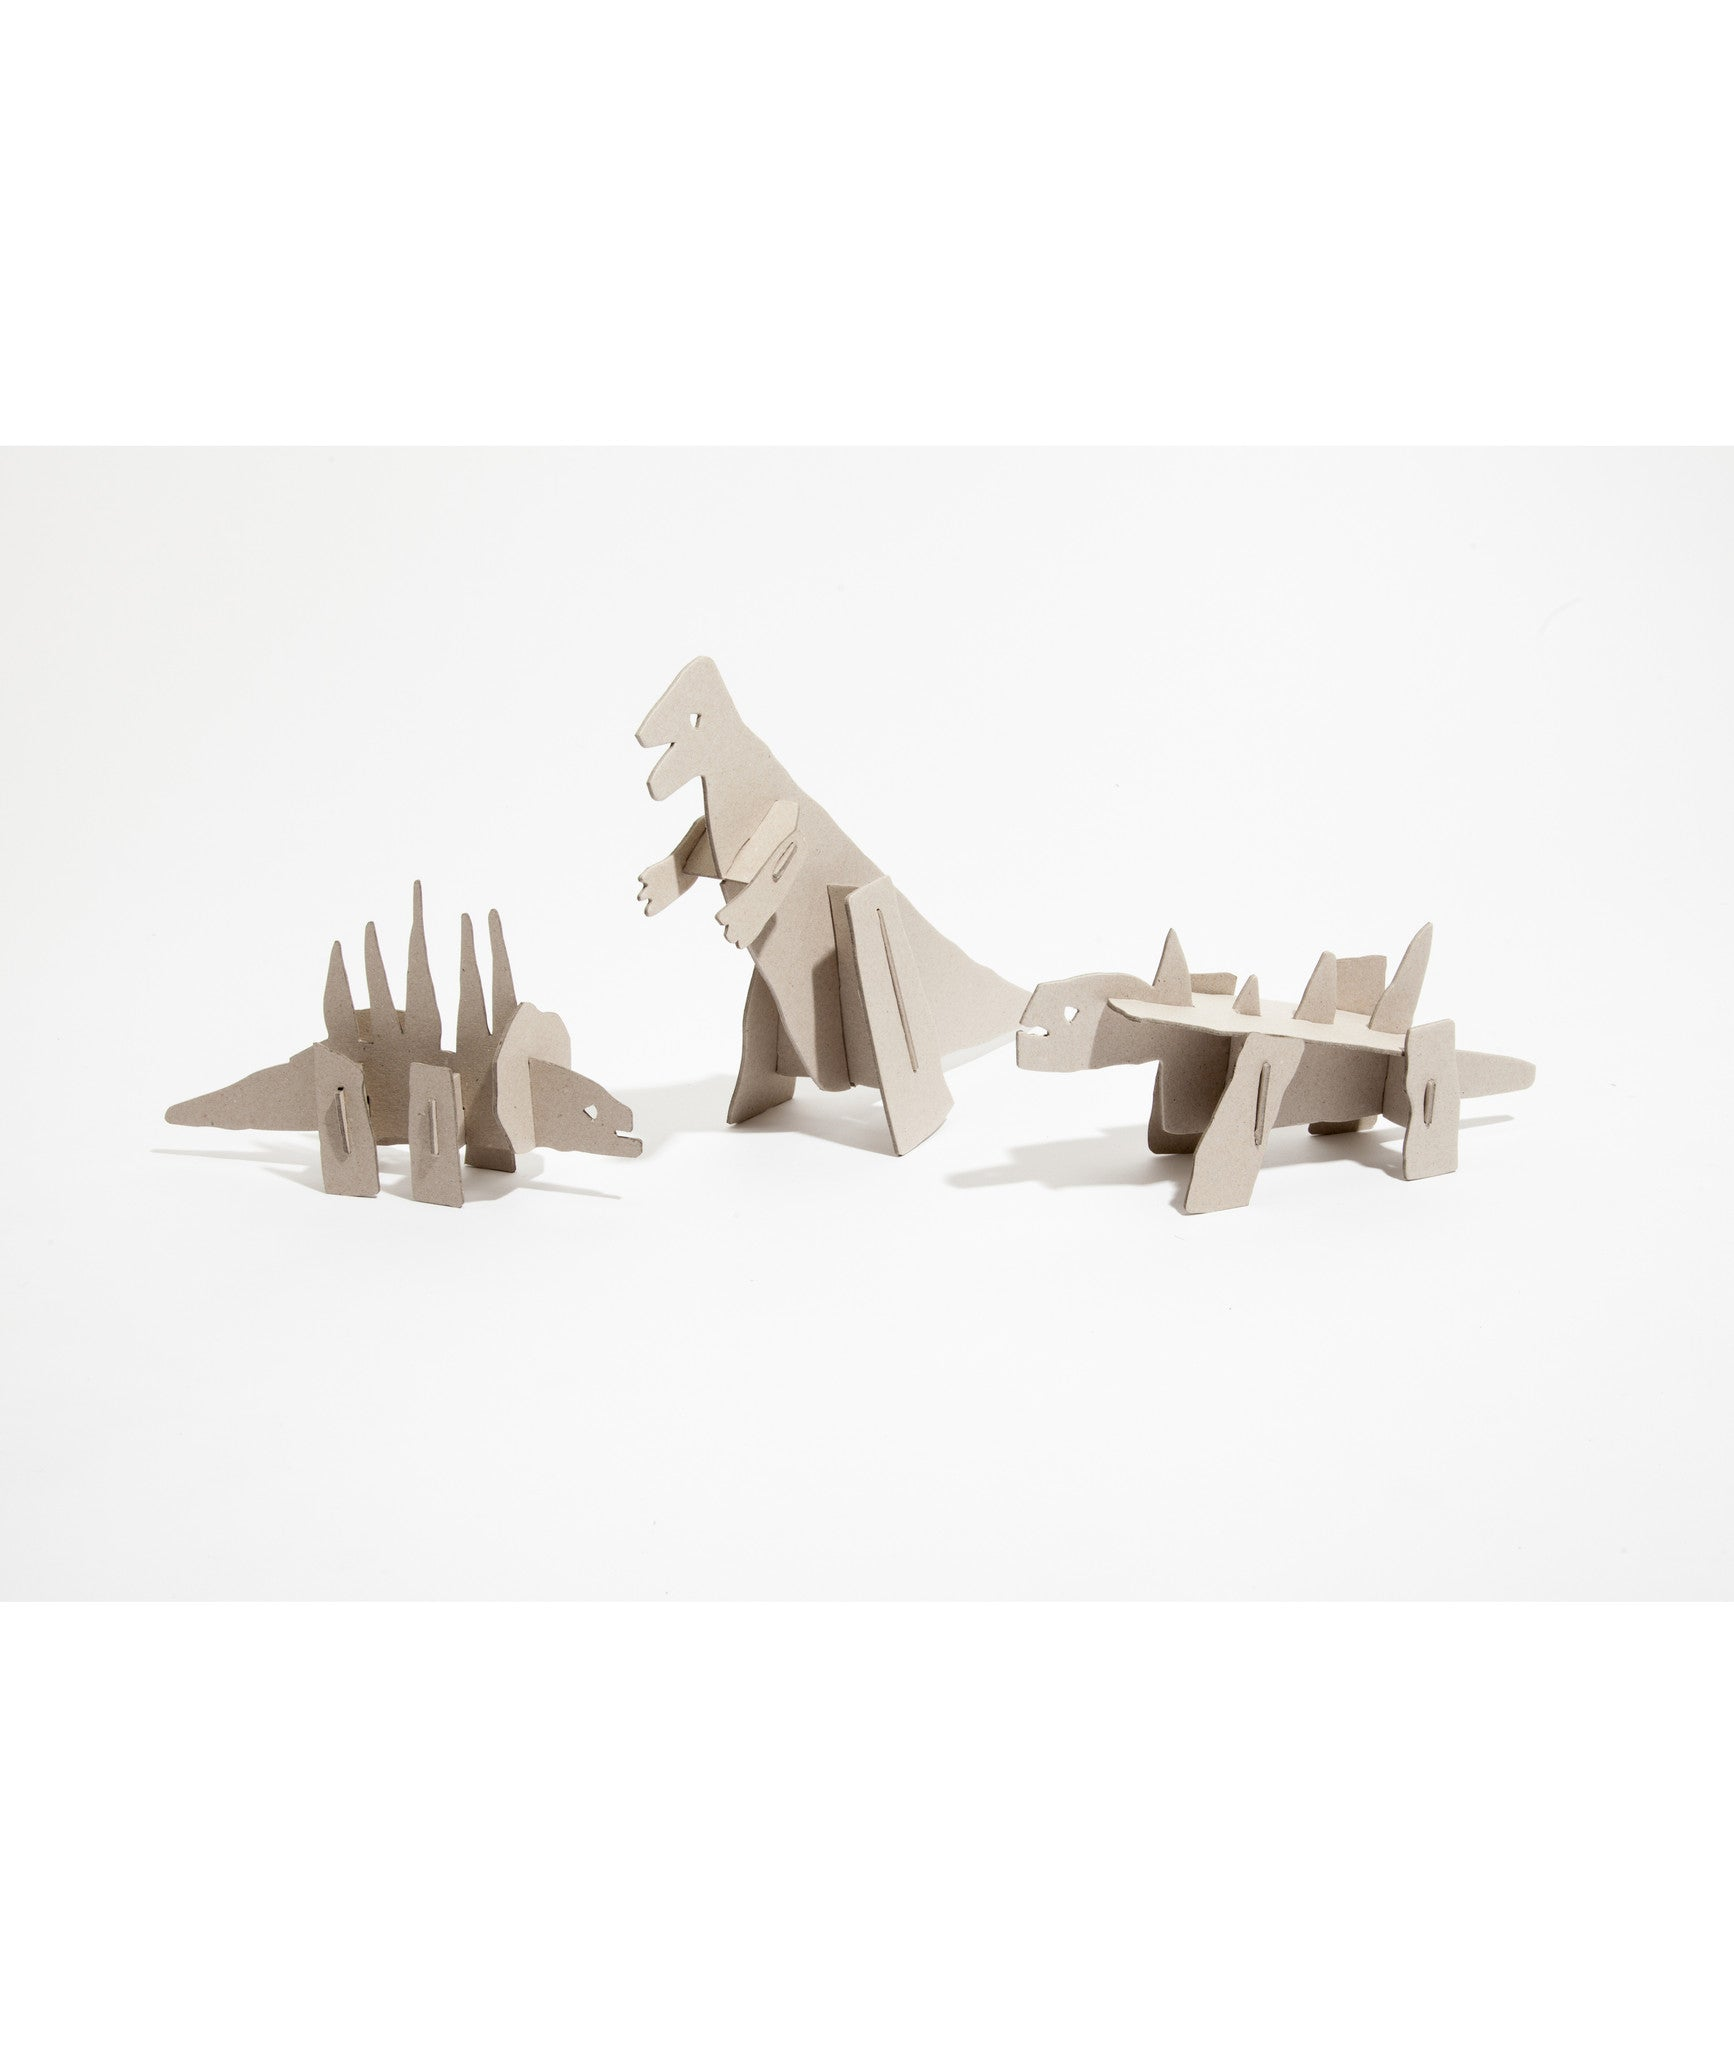 Set of Three Cardboard Dinosaurs ; The Good, The Bad, The Ugly